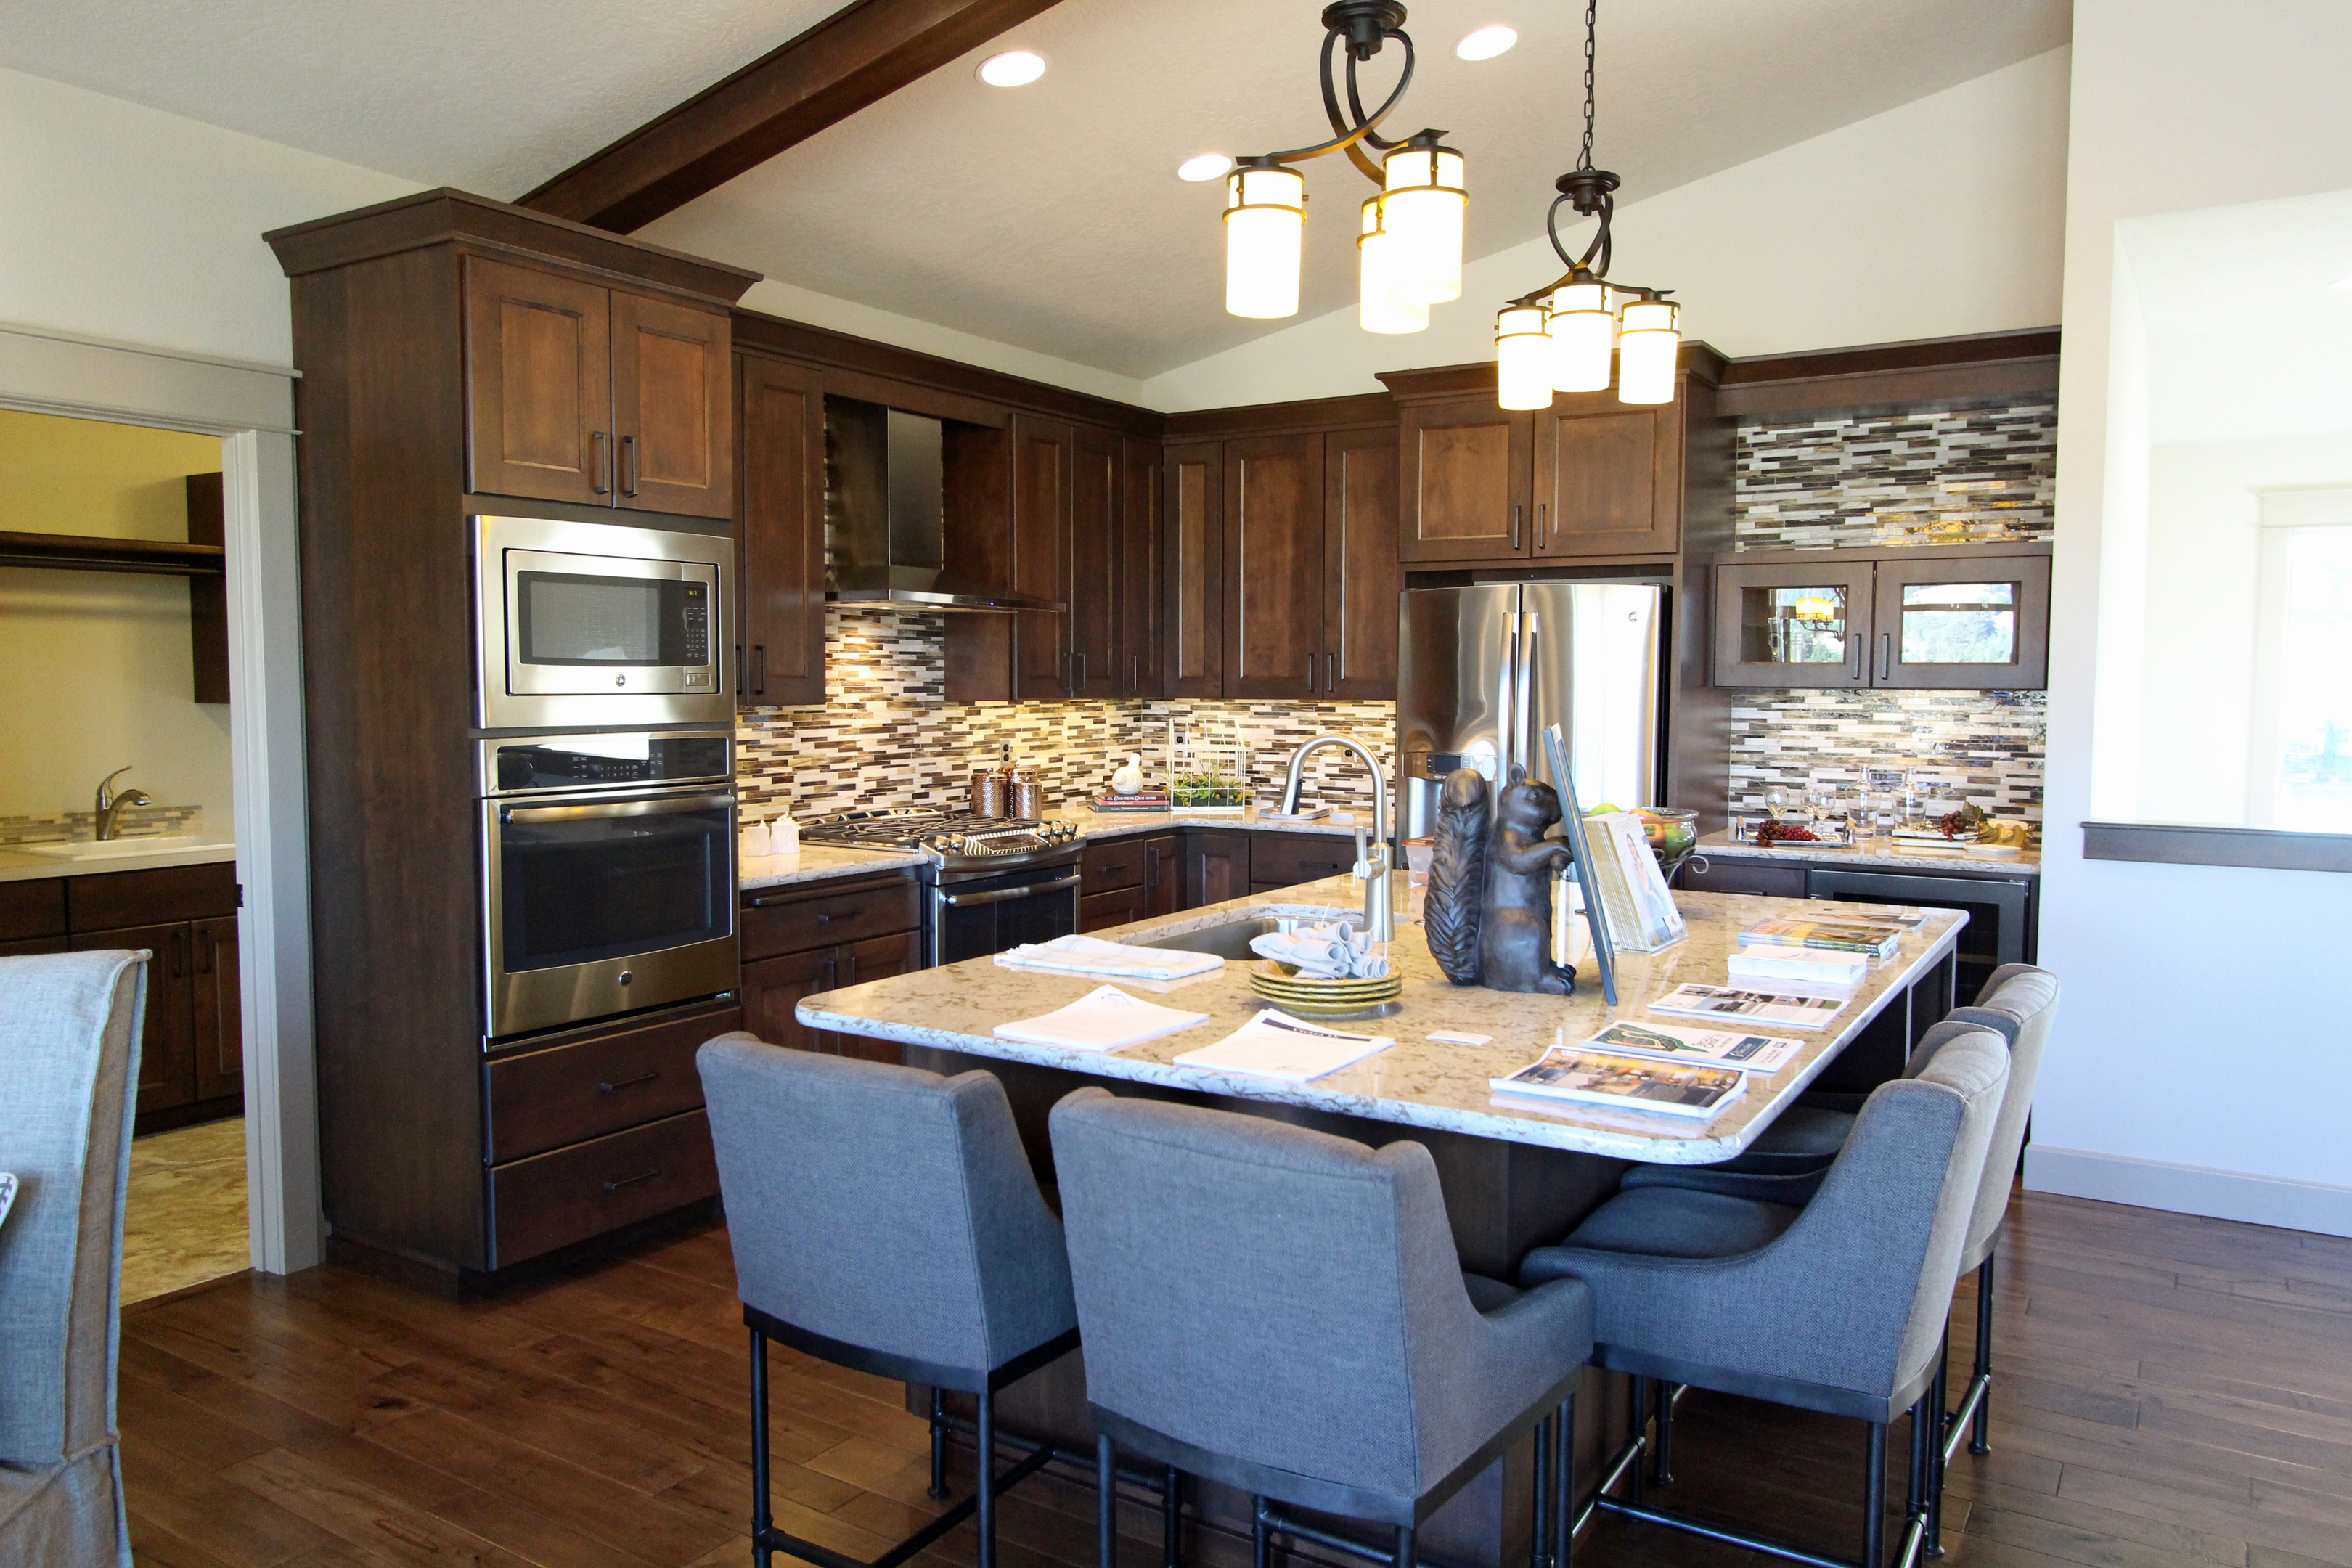 Kitchen Island With Overhang On Two Sides Design Ideas